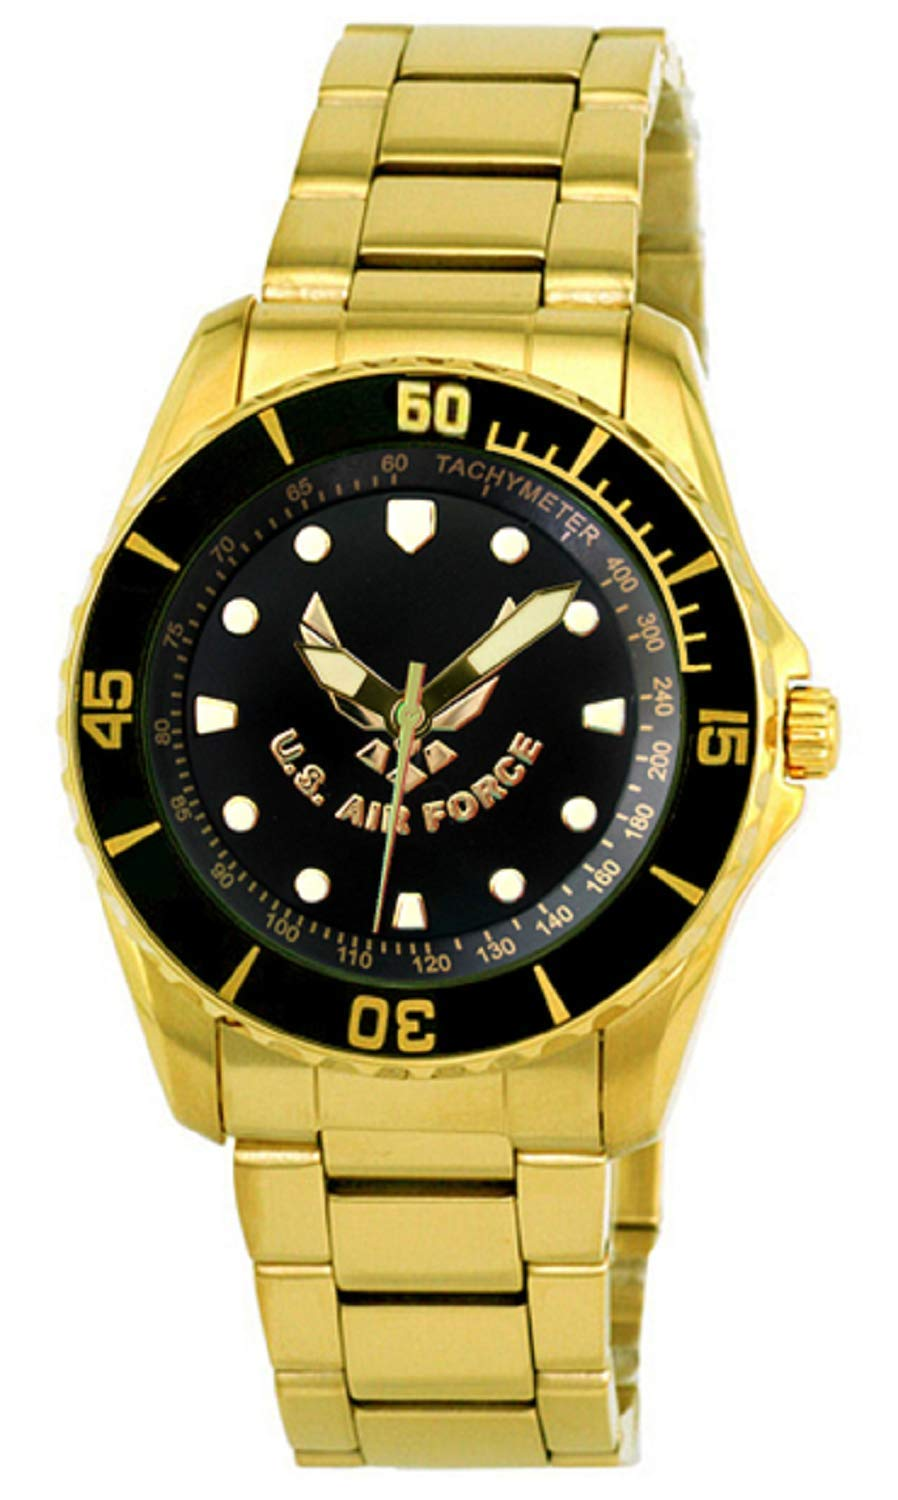 Aqua Force Air Force Golden Watch with 47mm Black Face